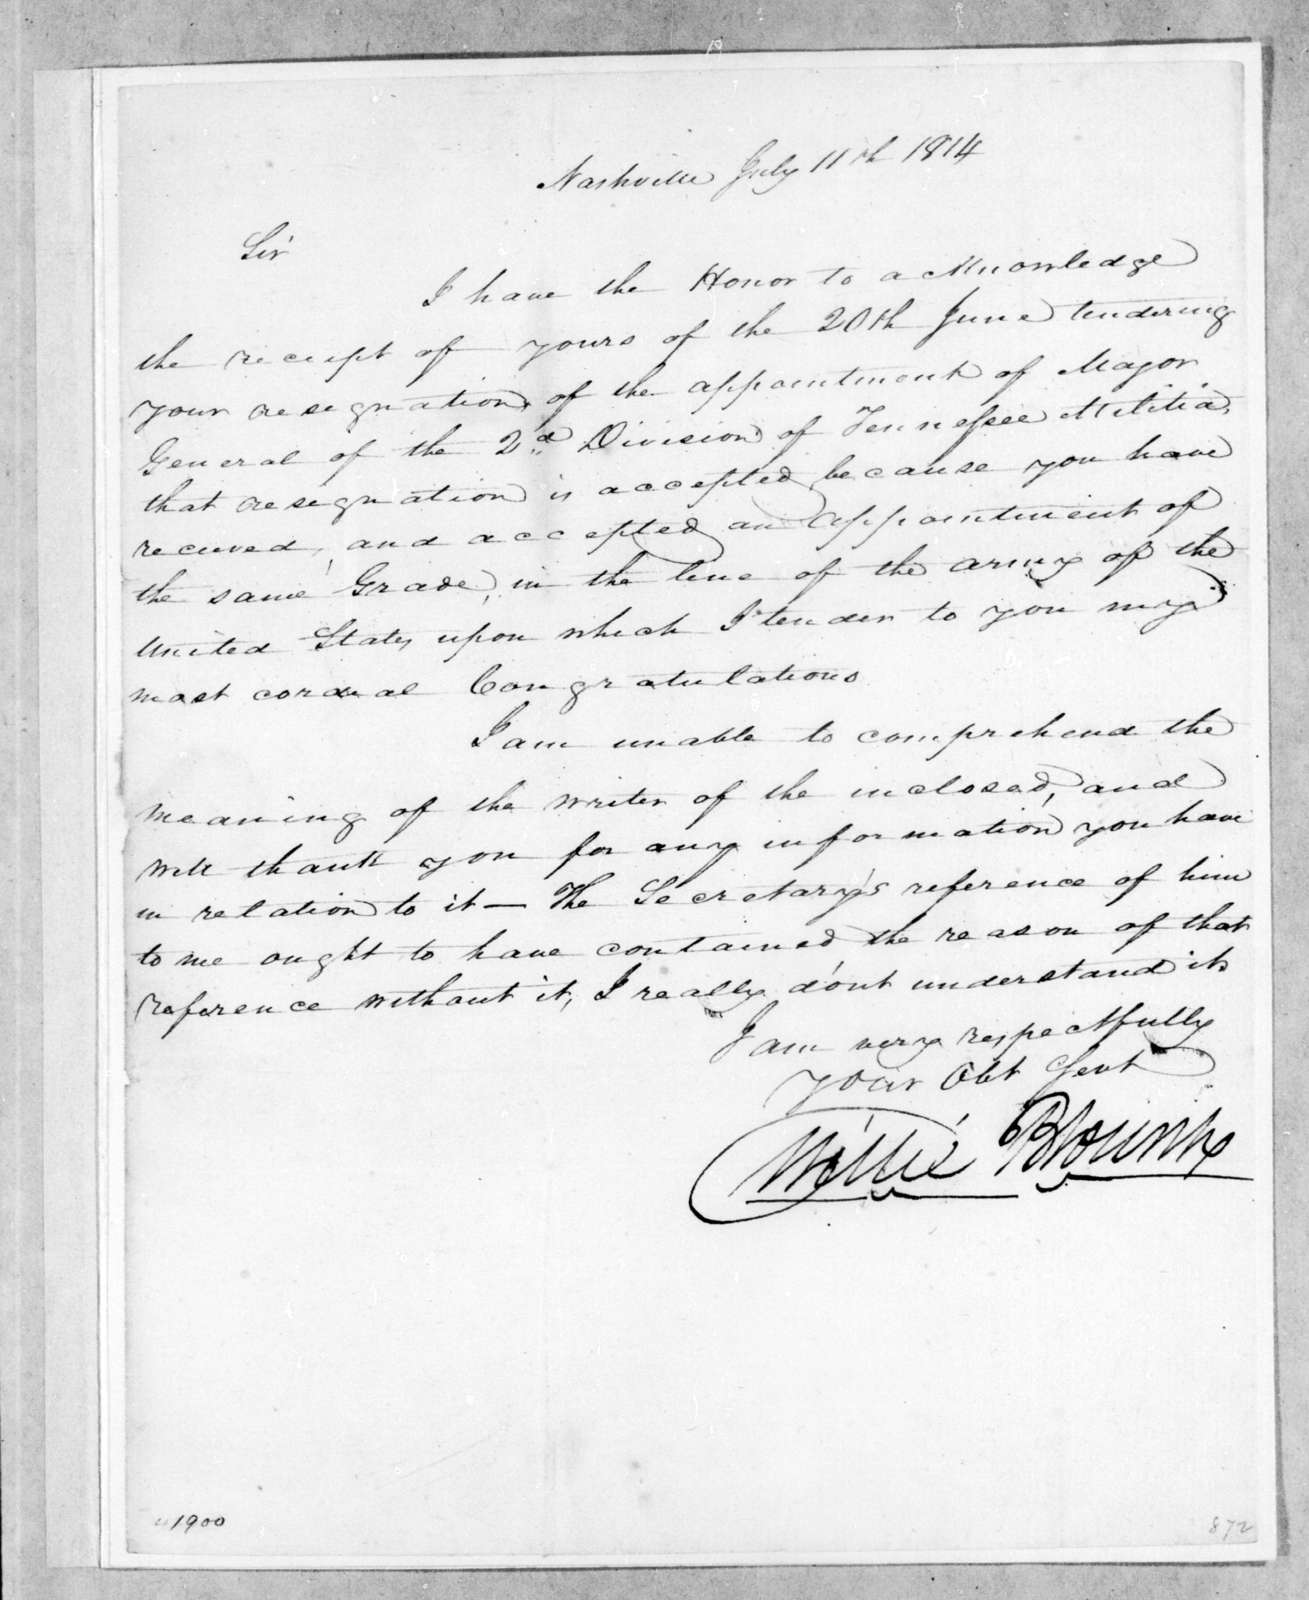 Willie Blount to Andrew Jackson, July 11, 1814